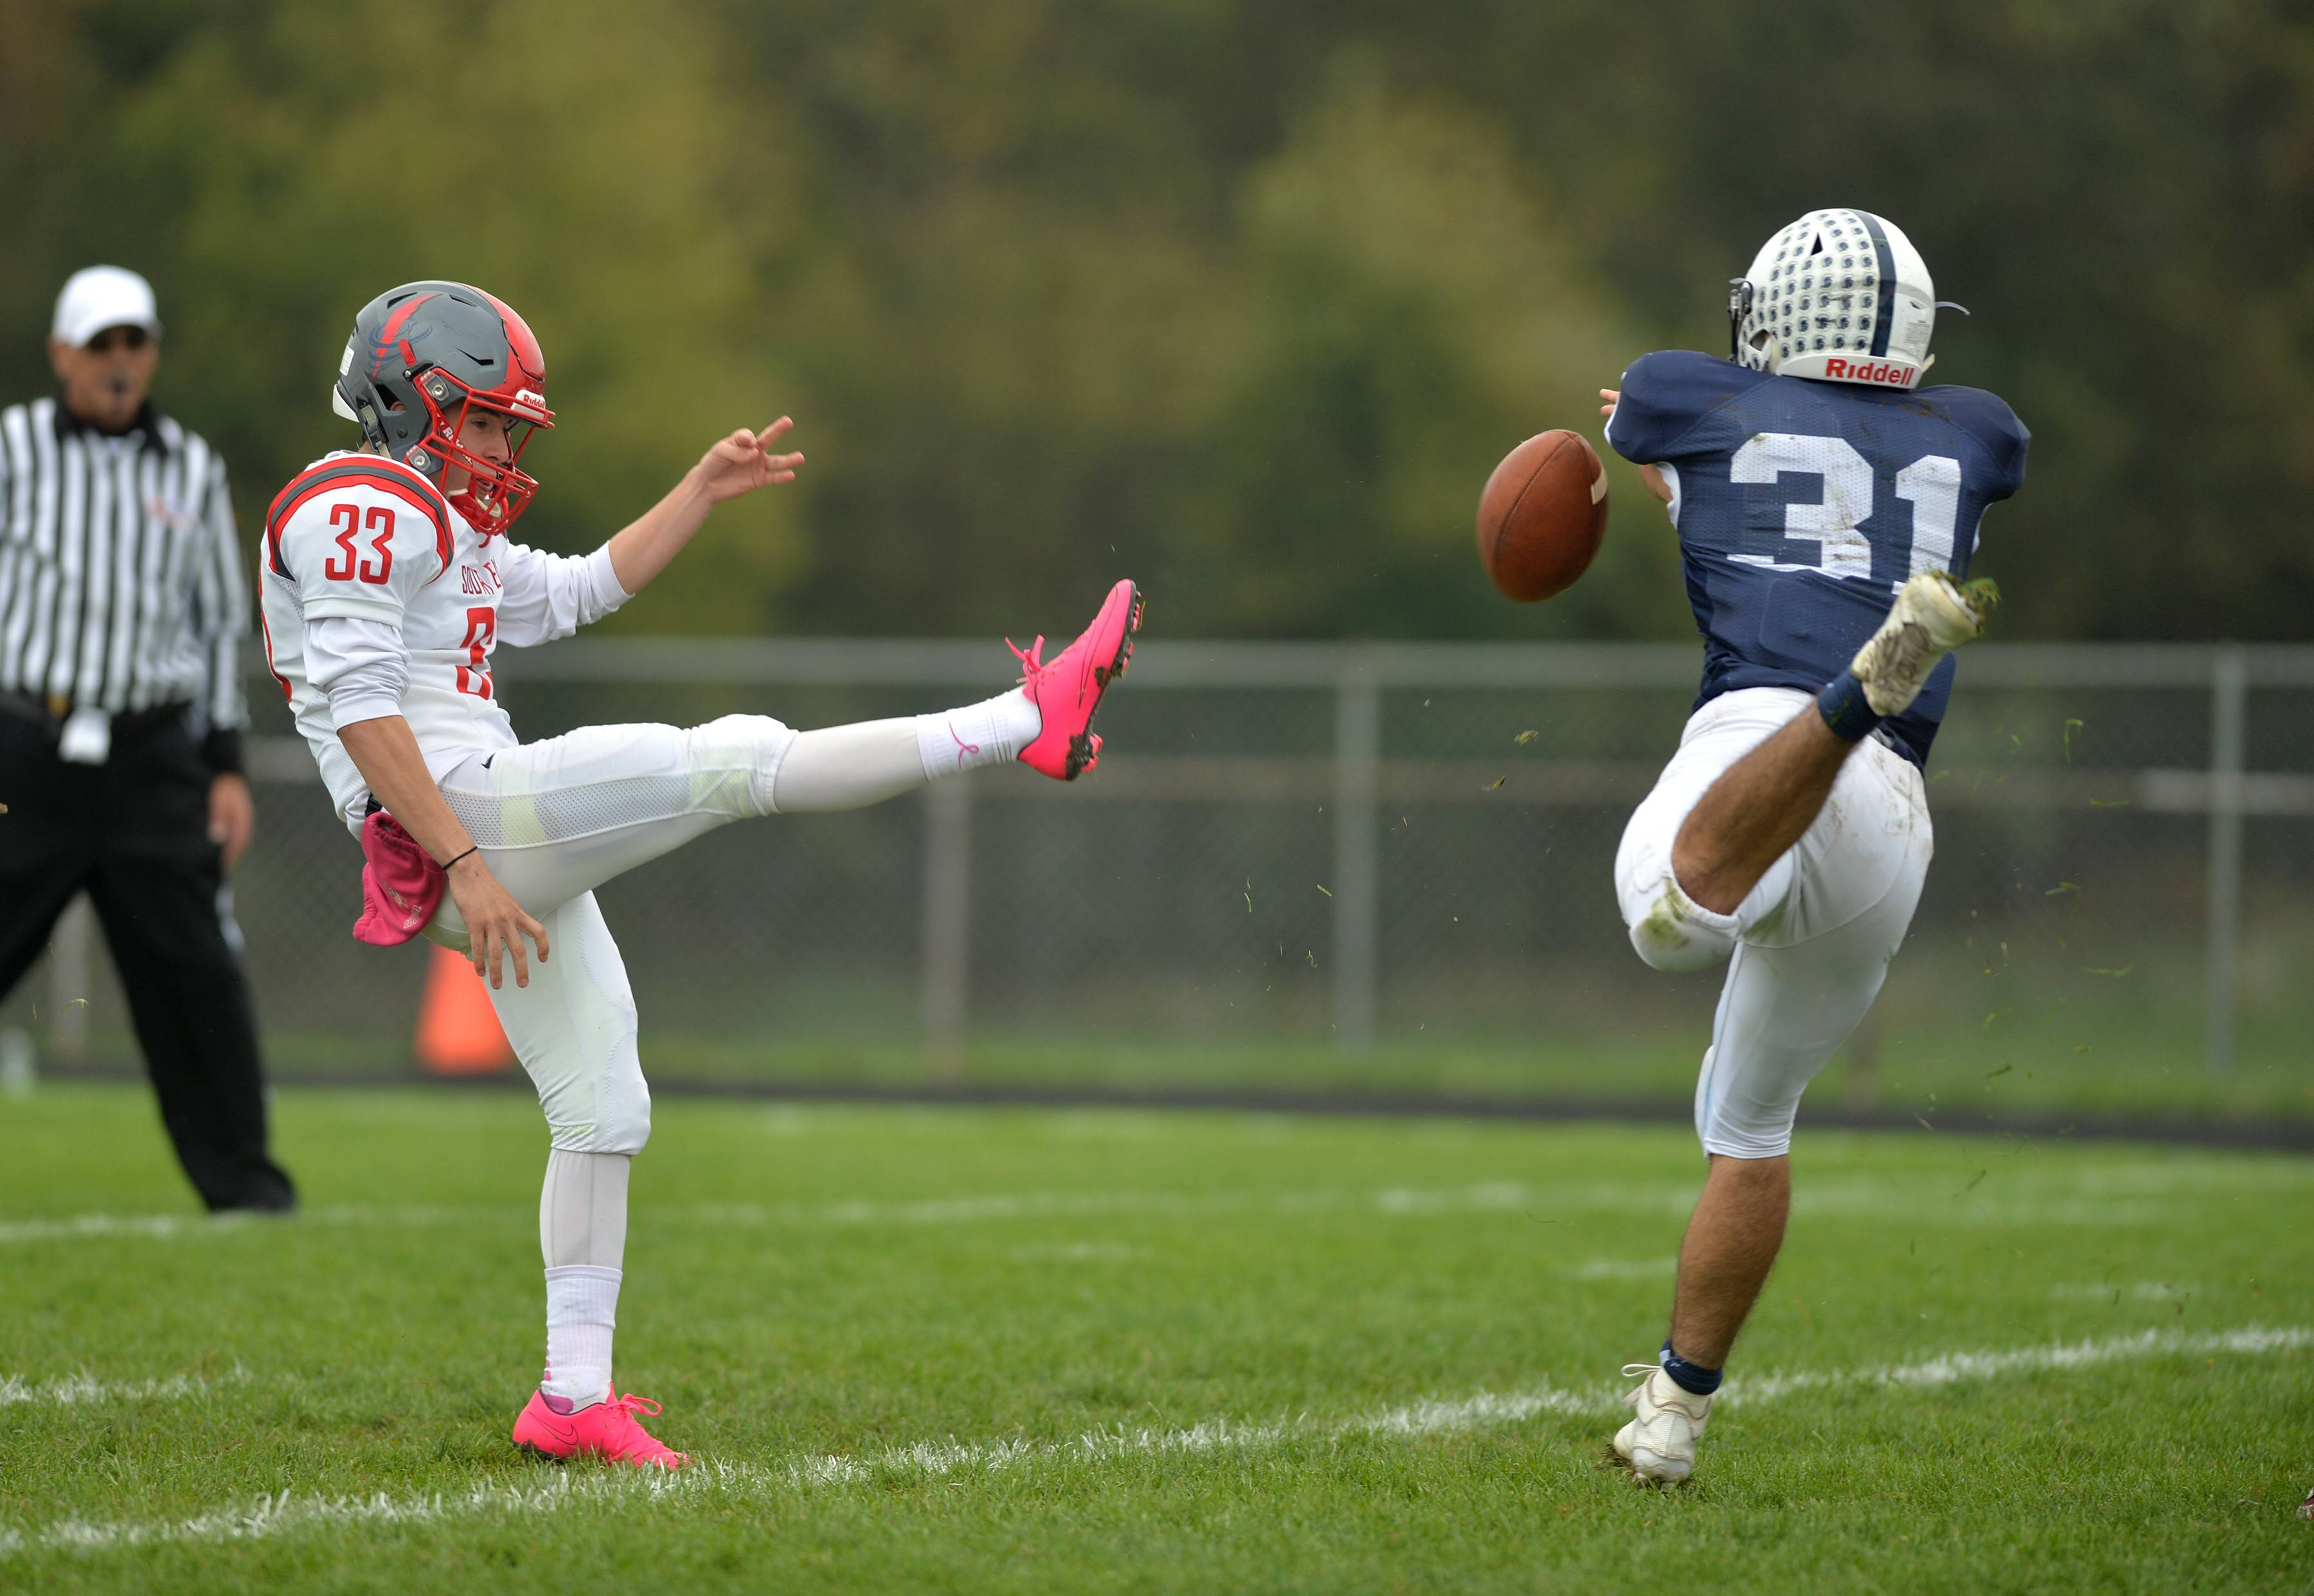 Cary-Grove defensive back Max Skol blocks a punt by South Elgin kicker Nicholas Farfan in the first quarter Saturday in Cary.